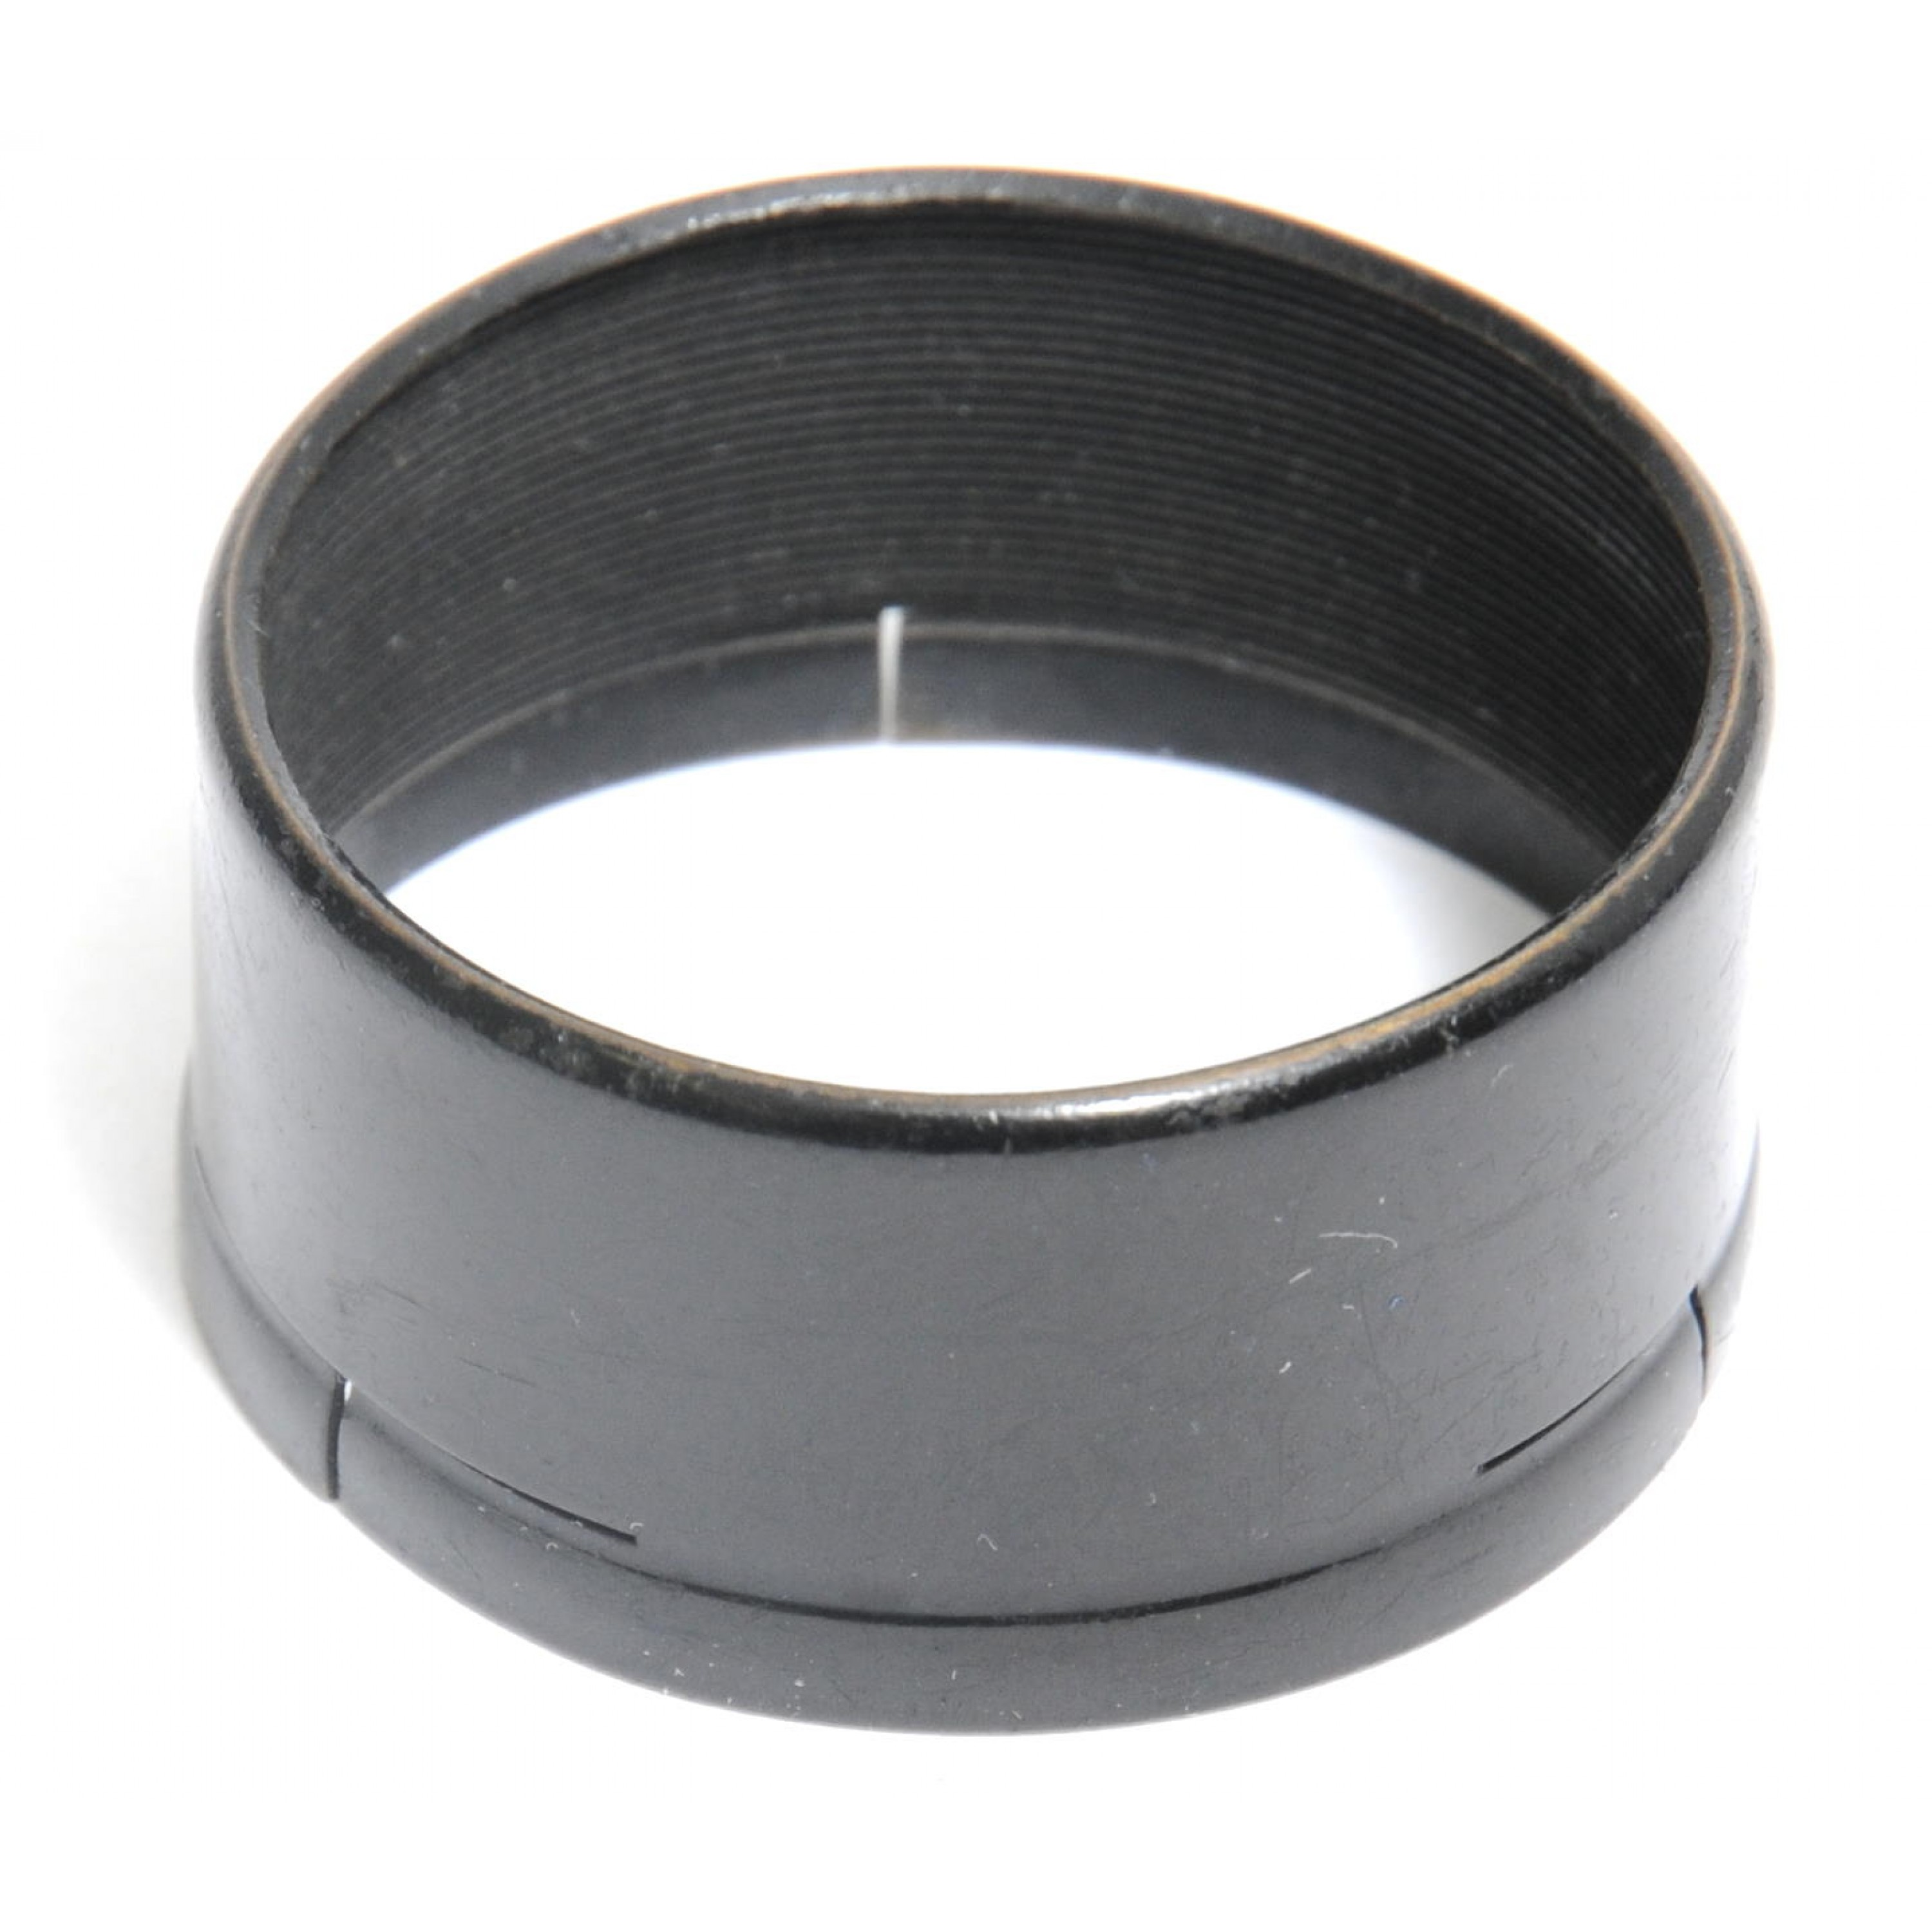 Early Leitz FISON Lens Hood black paint for Leica 1A very rare